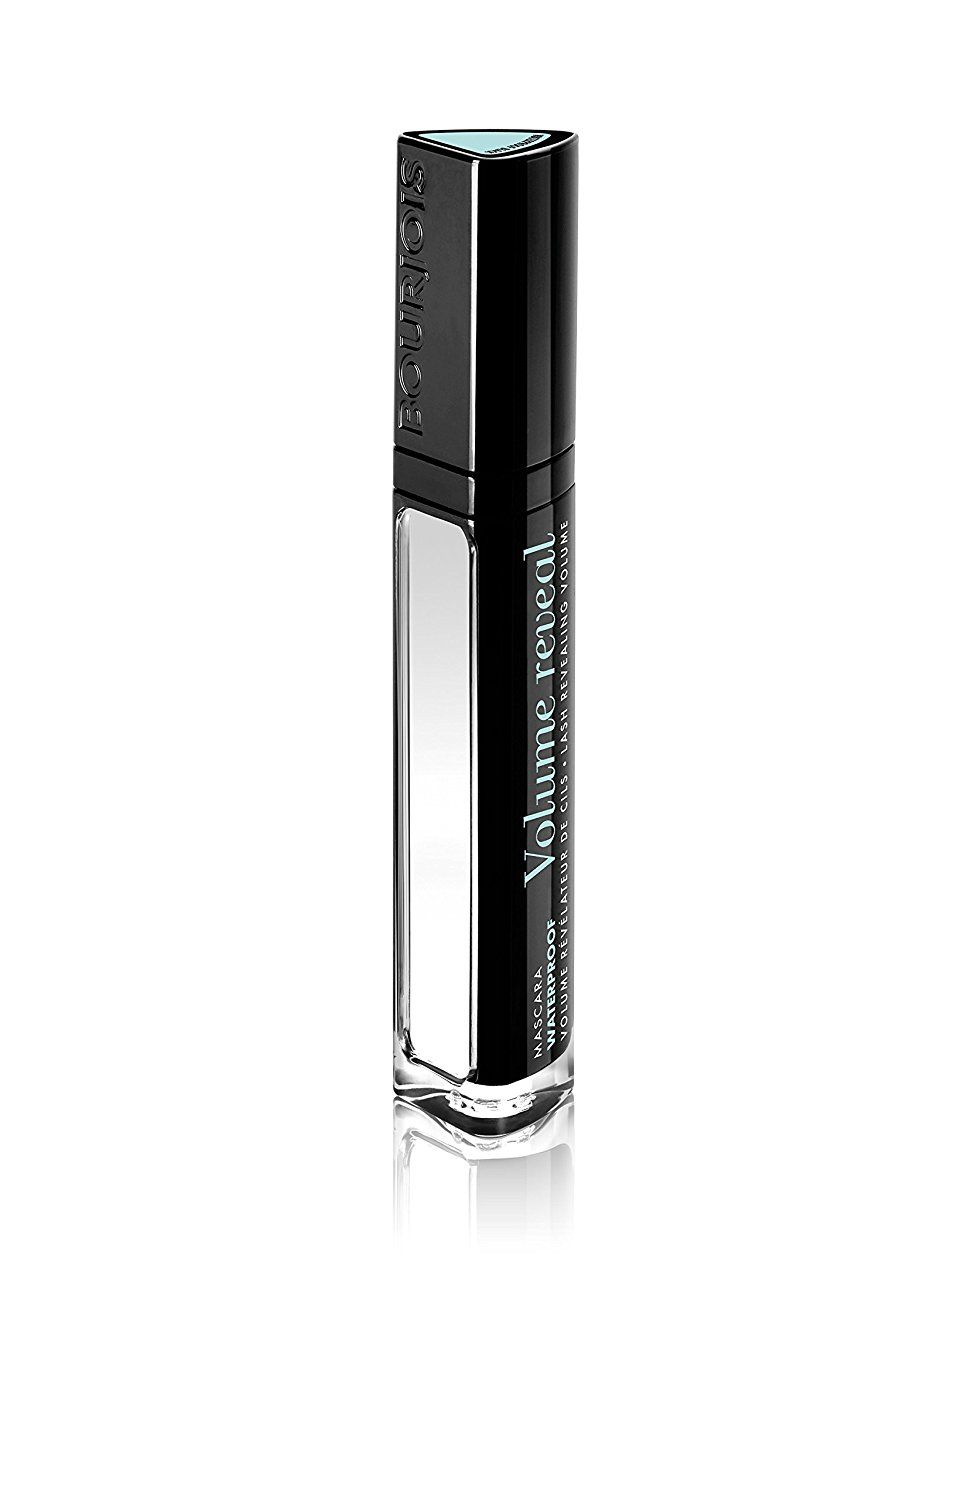 Bourjois Paris Volume Reveal 7.5ml Mascara - 23 Waterproof Black